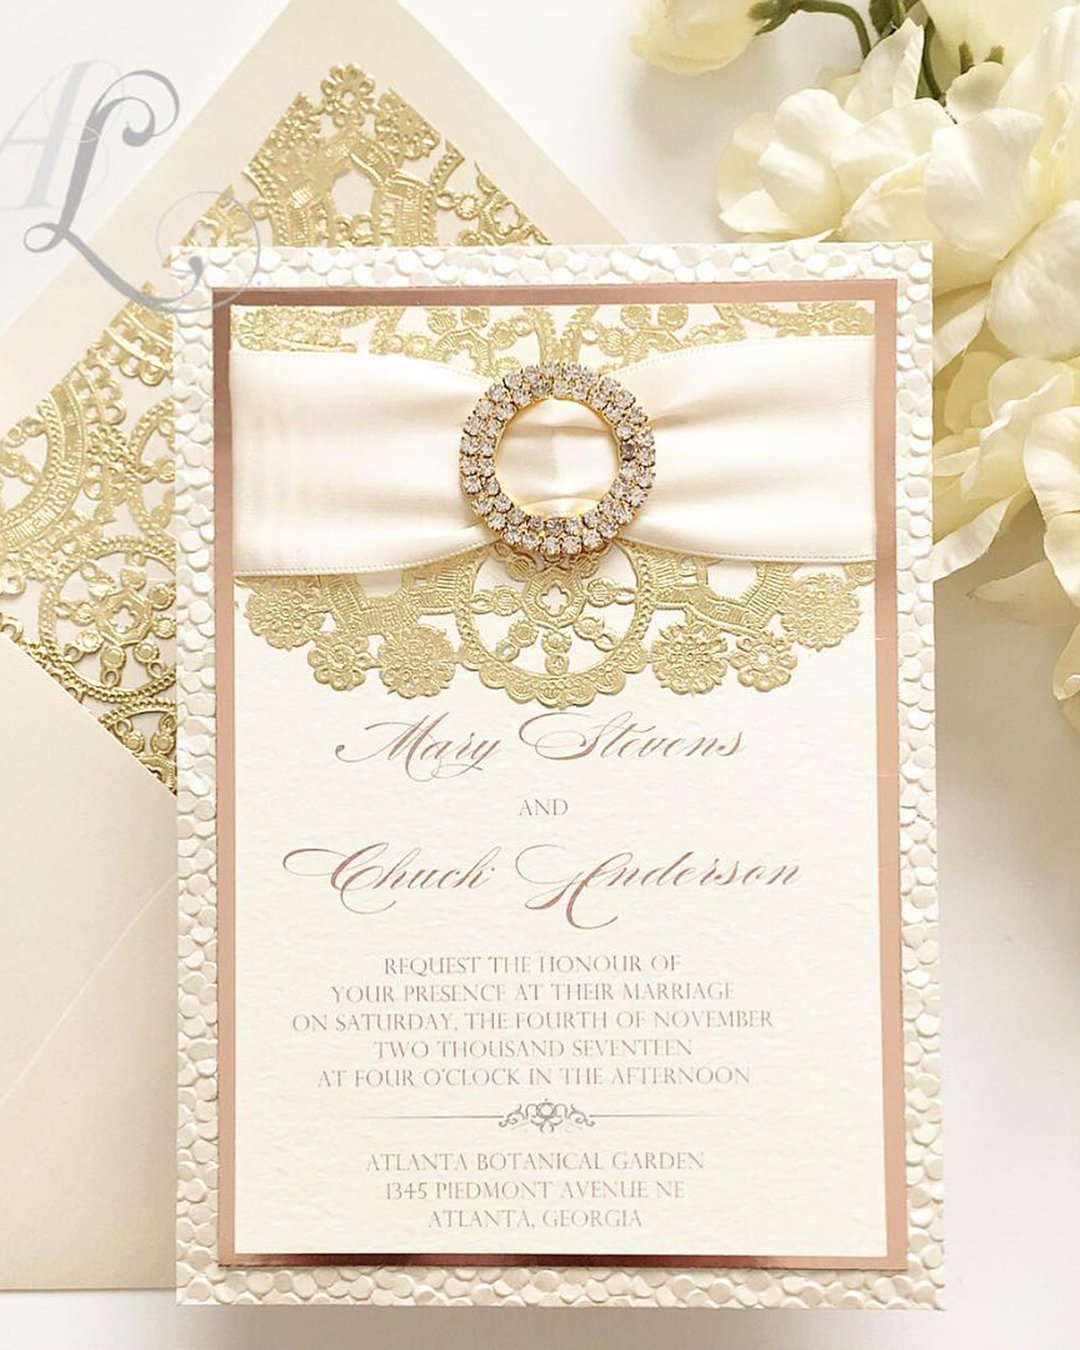 nude wedding photos nude invitation gold lace beautiful alexandrialindo